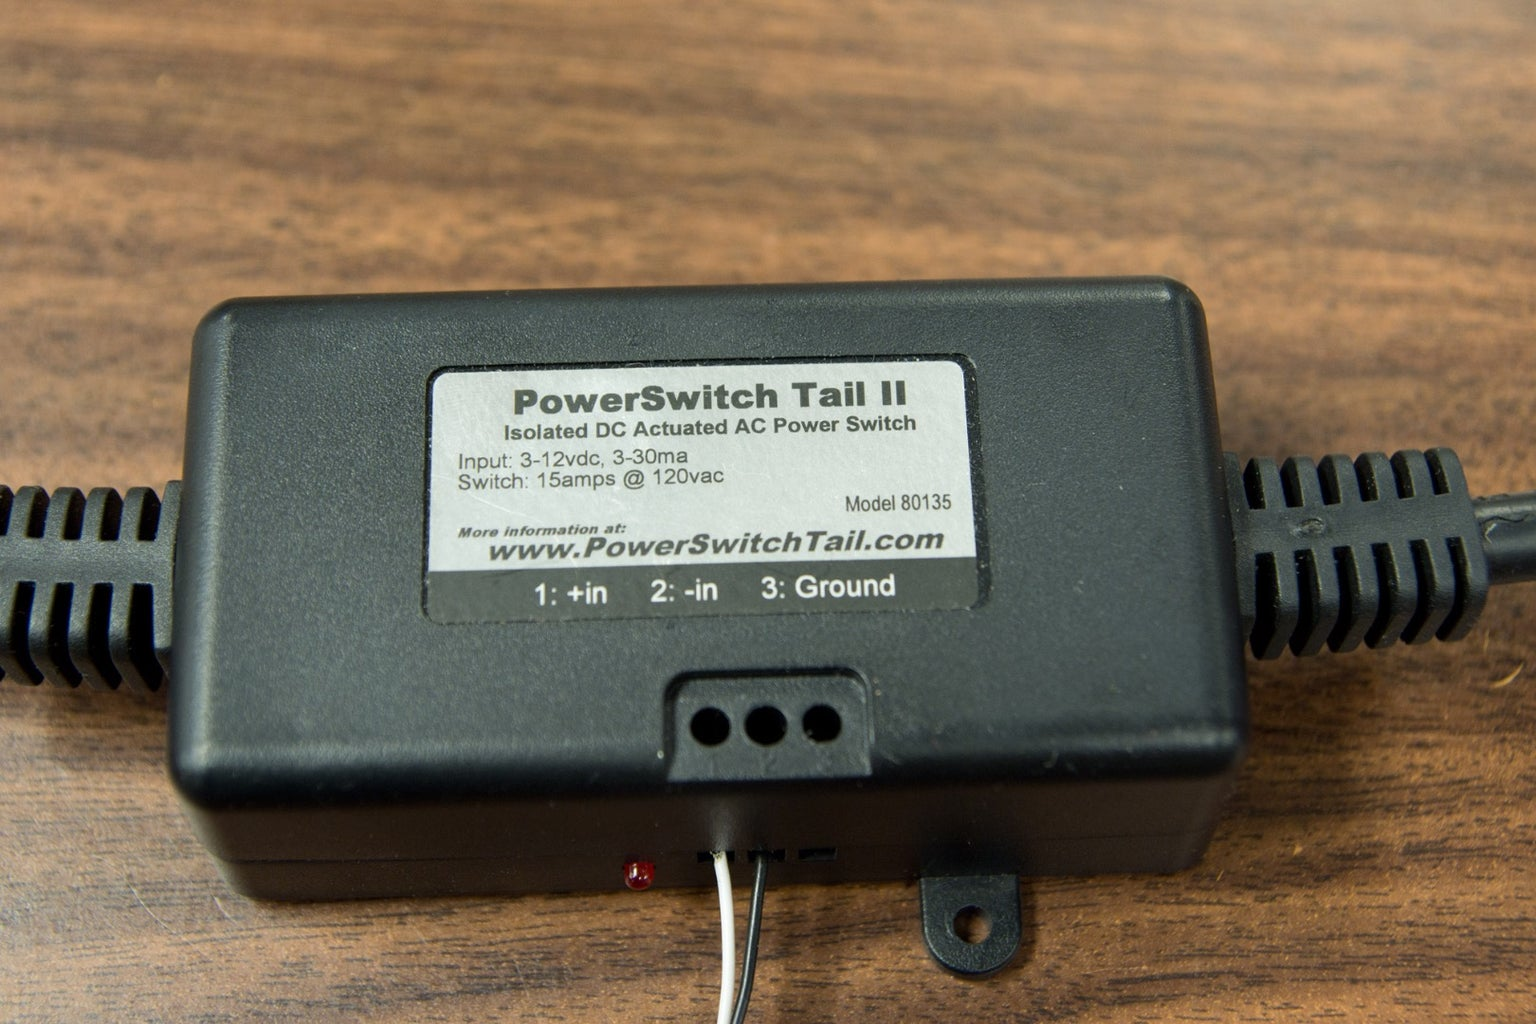 Controlling an AC Load With the PowerSwitch Tail